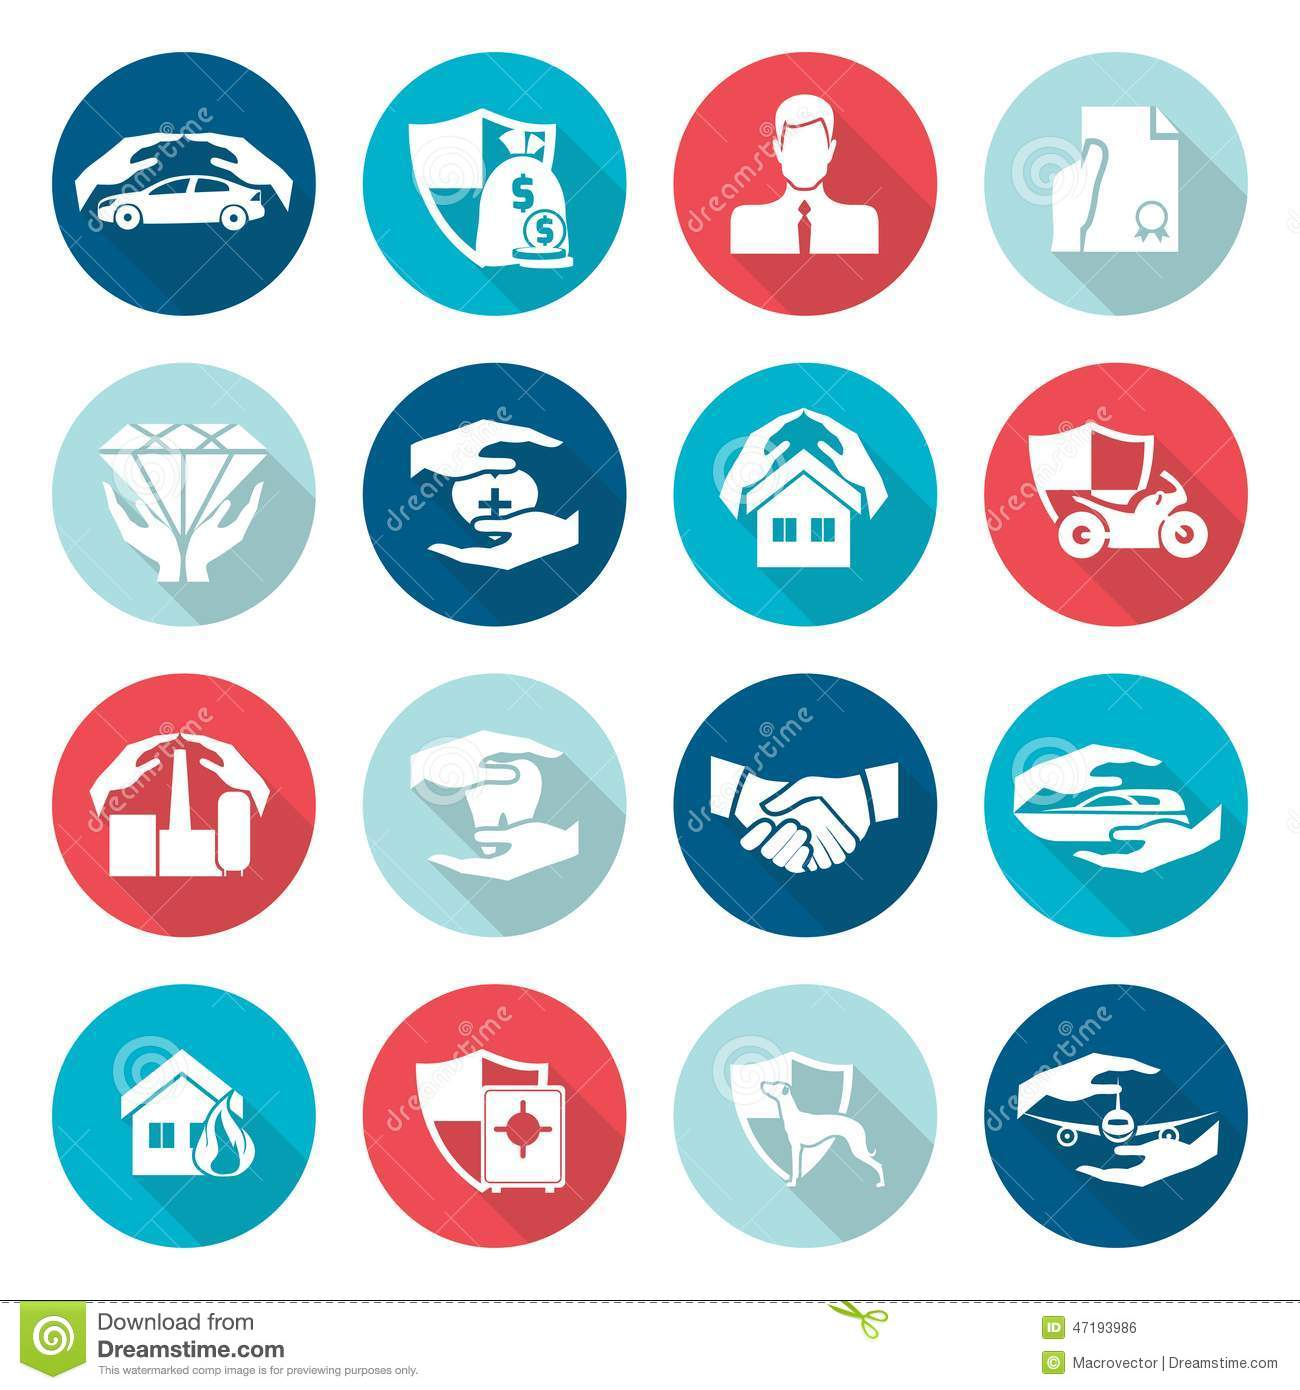 insurance-icons-flat-security-set-medical-life-family-protection-security-symbols-isolated-vector-illustration-47193986.jpg